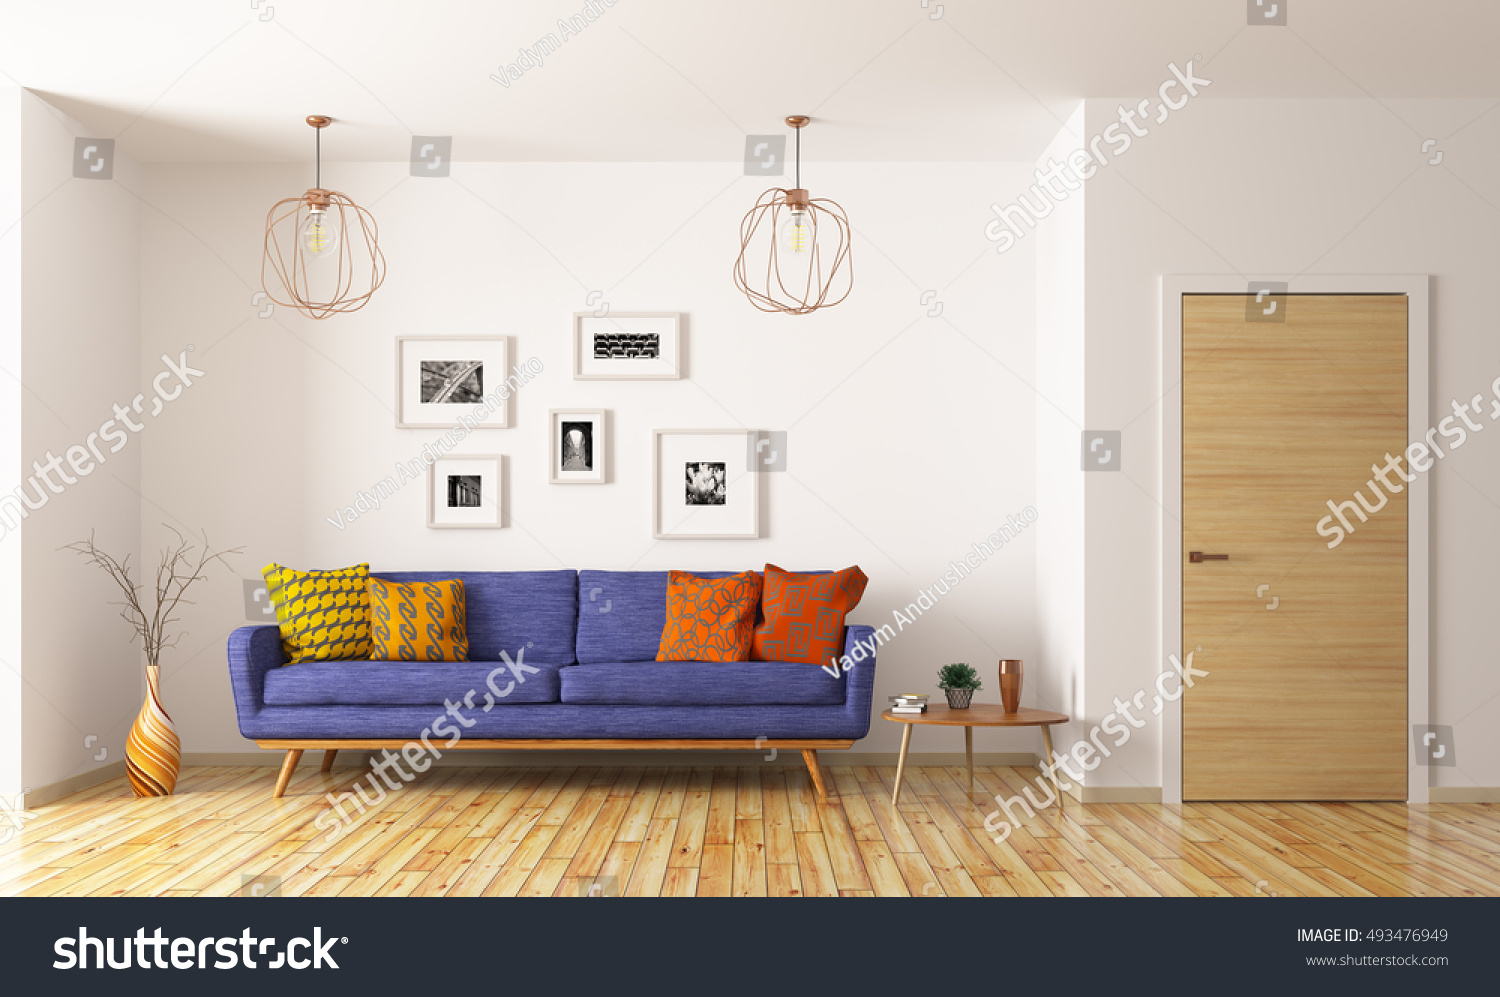 modern interior of living room with blue sofa and door 3d rendering